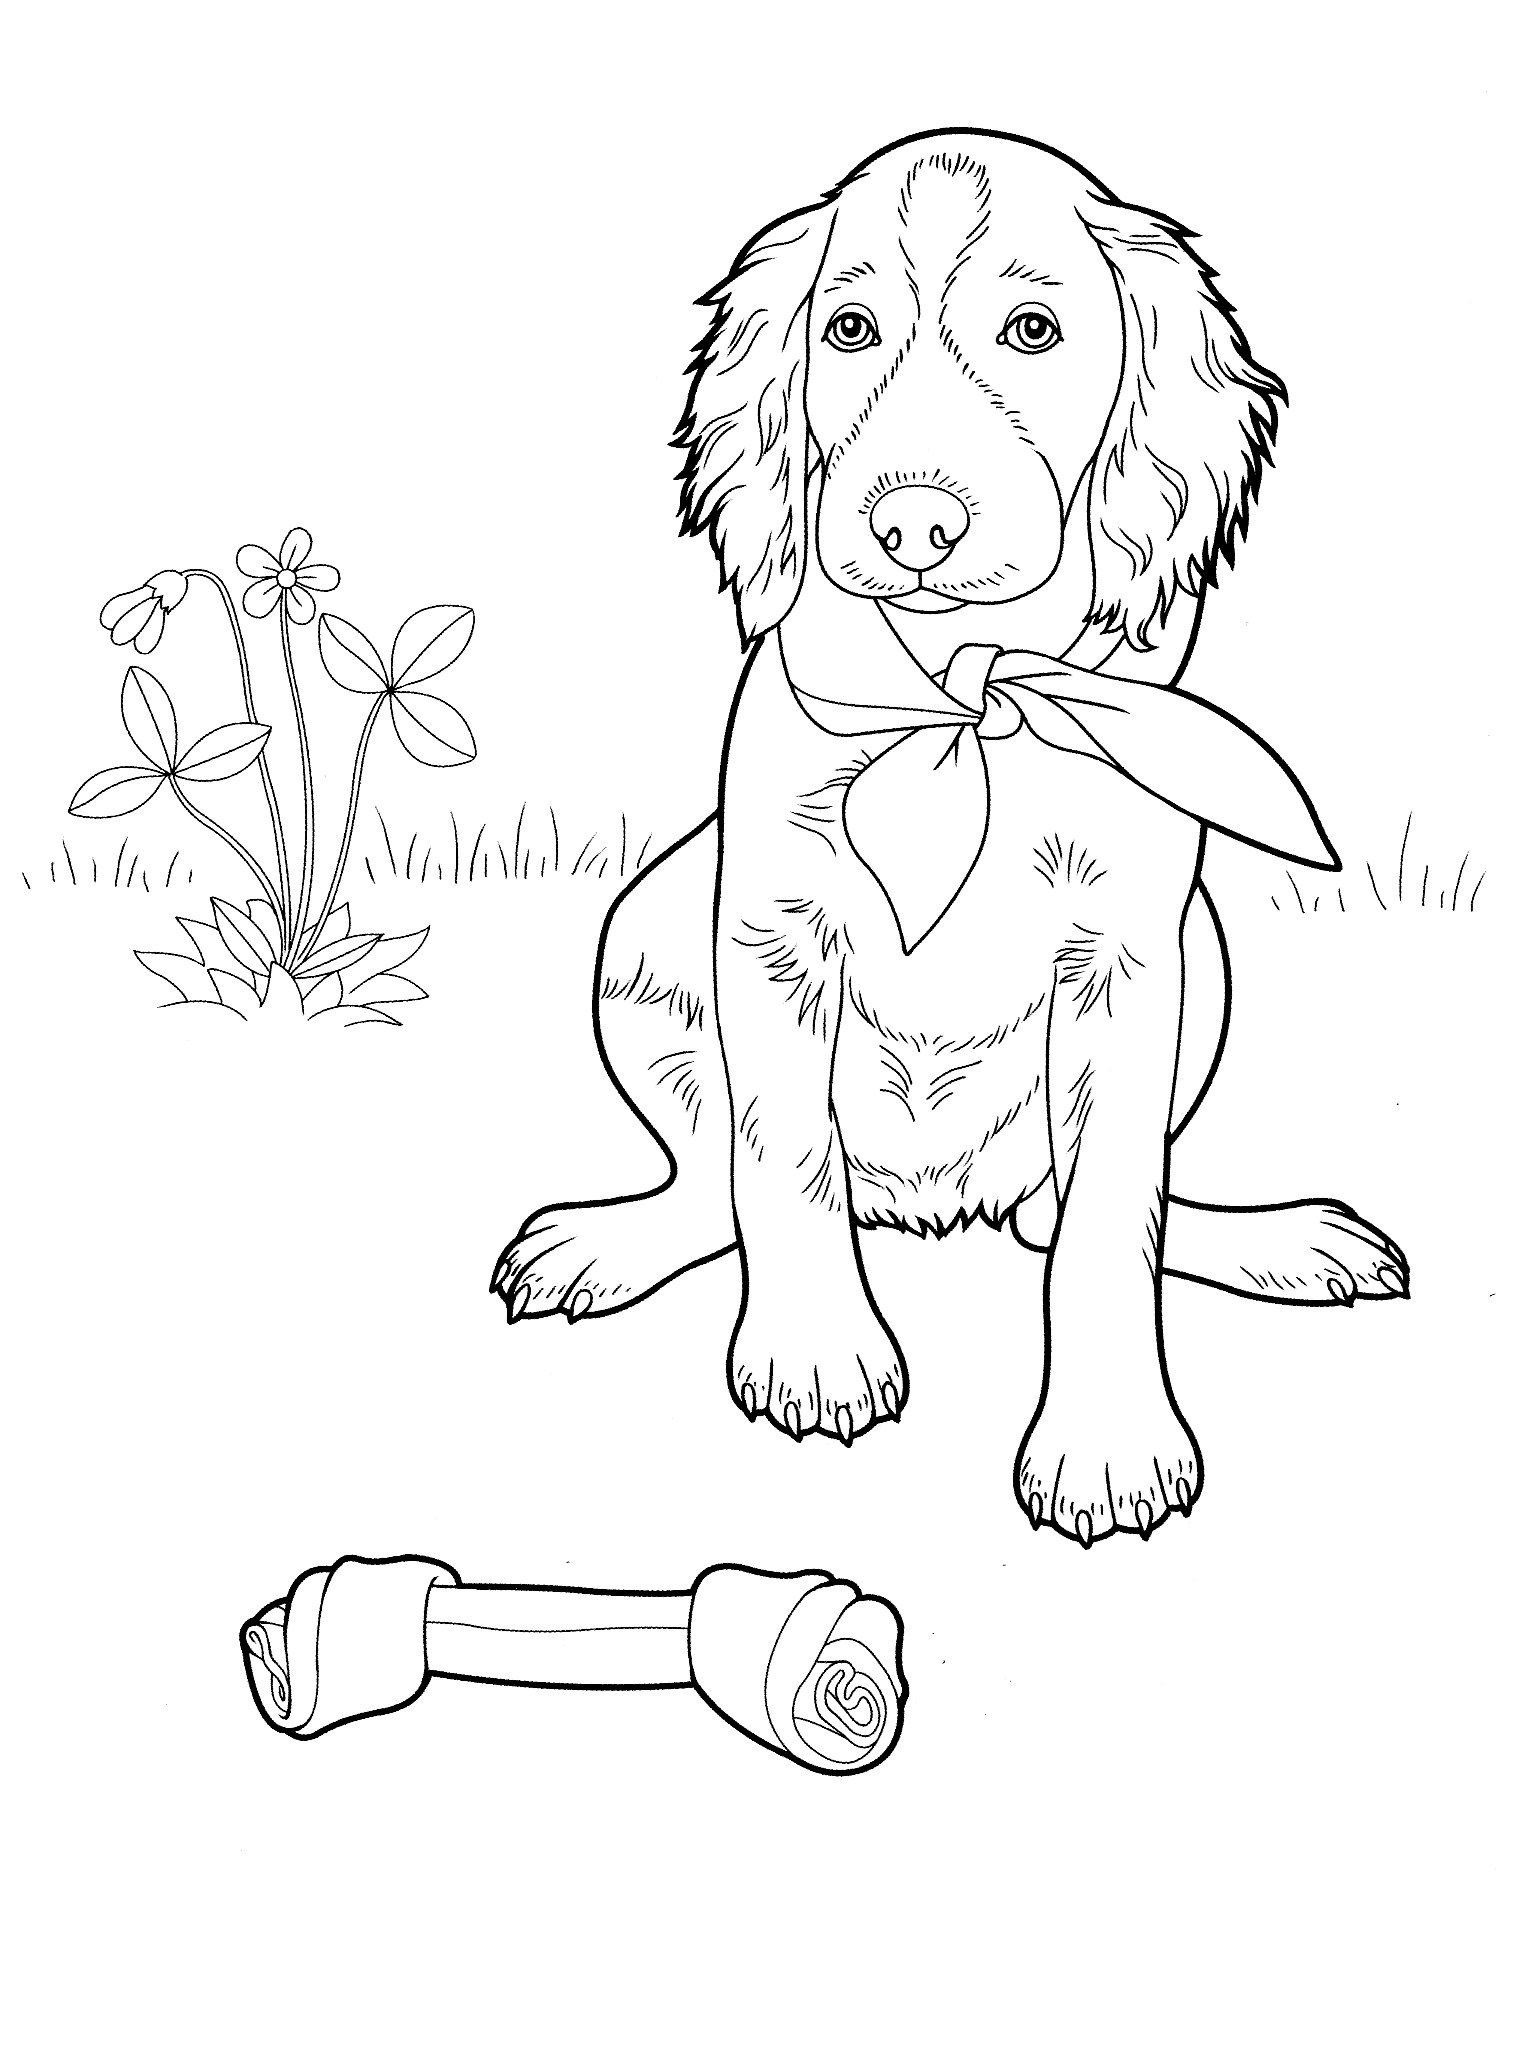 difficult dog coloring pages hard dog coloring pages at getdrawings free download pages dog difficult coloring